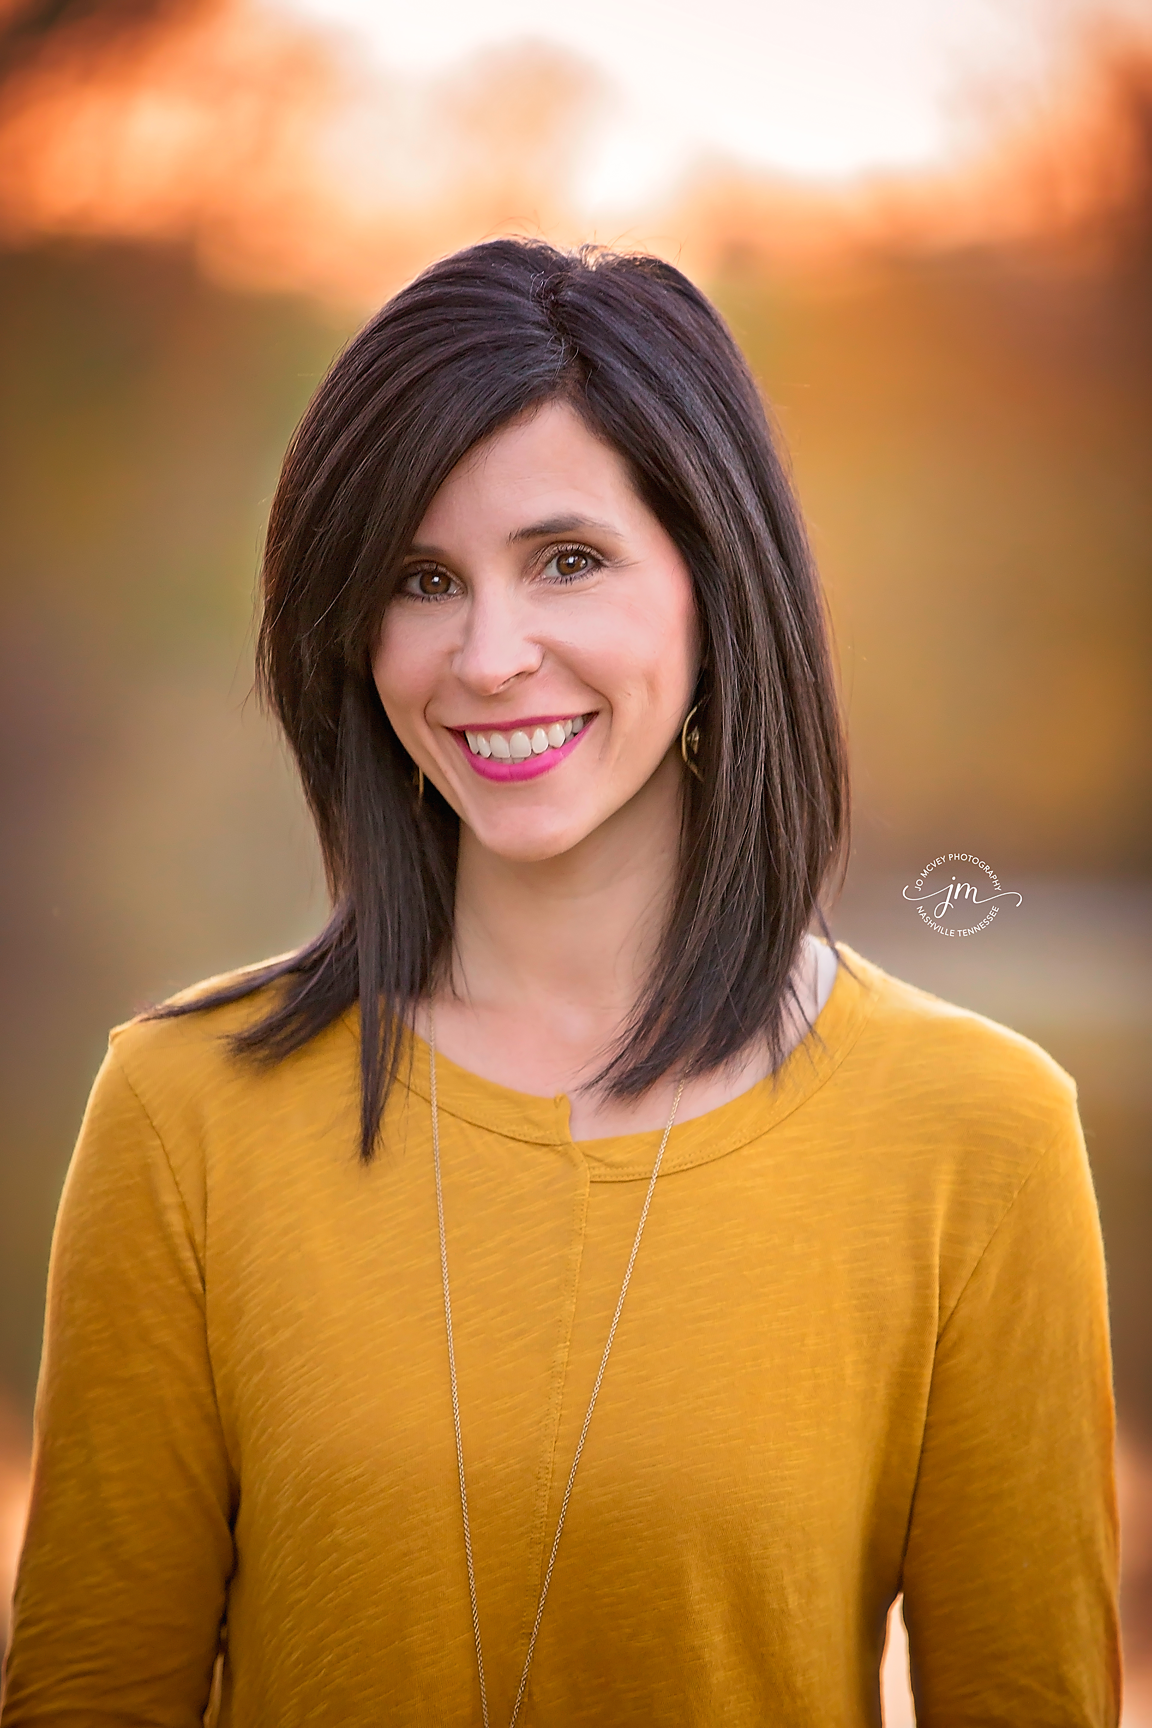 Fall Female Headshot - Nashville Portrait Photographer | Jo McVey Photography